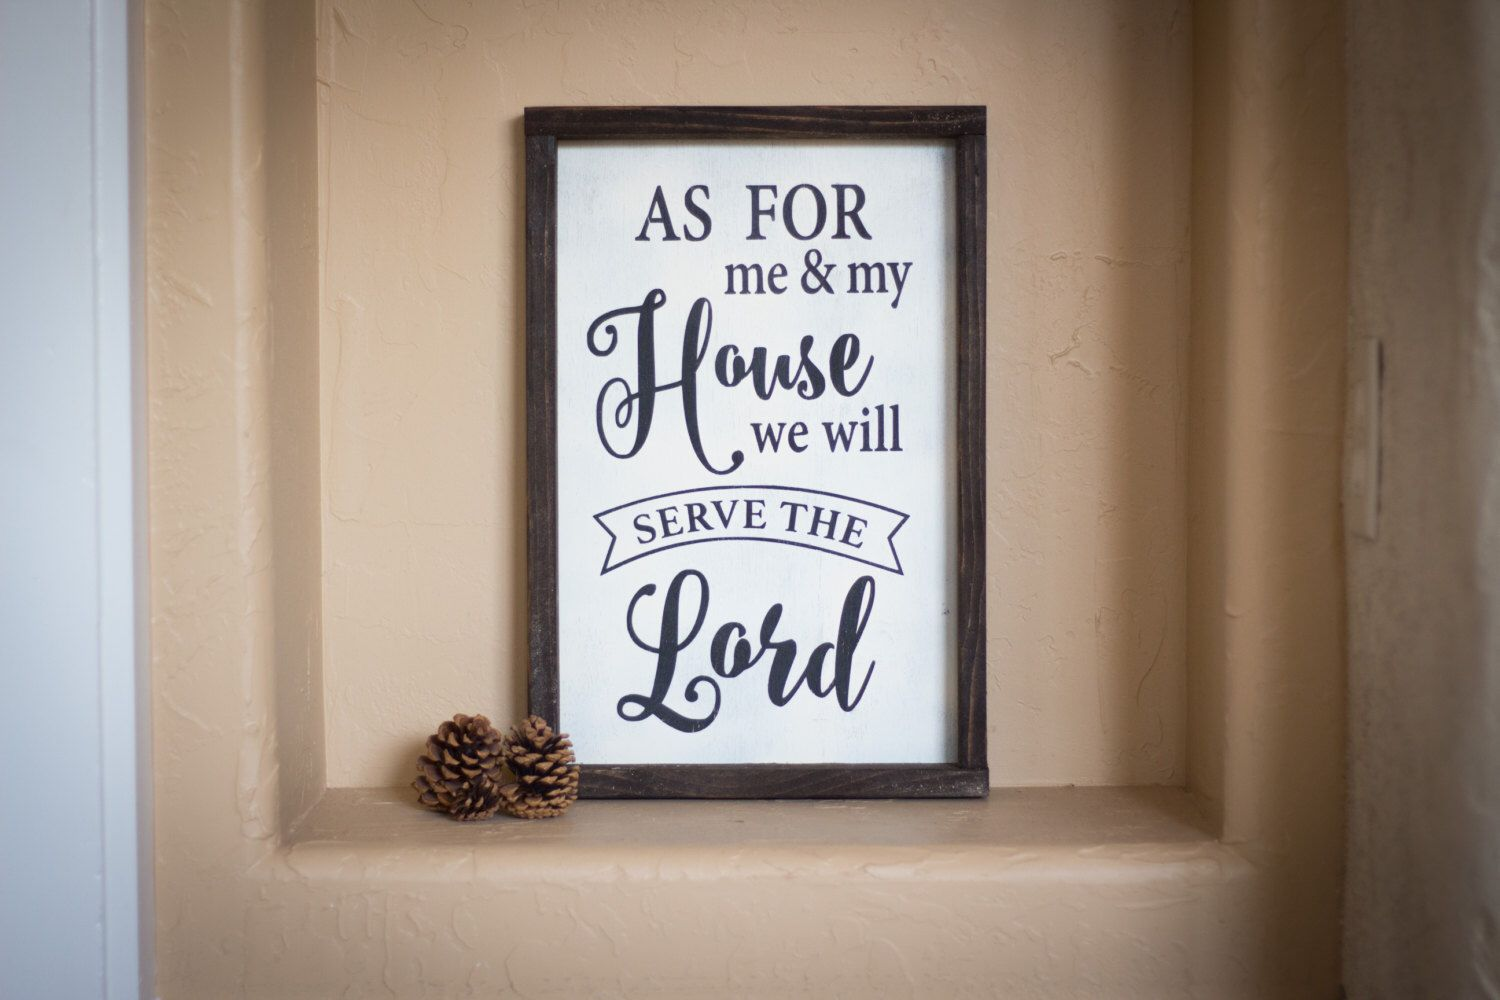 Wood Sign, As for me and my house we will serve the Lord, new home, joshua 24:15, bible verse art sign by LetsFlyAwayShop on Etsy https://www.etsy.com/listing/488273219/wood-sign-as-for-me-and-my-house-we-will